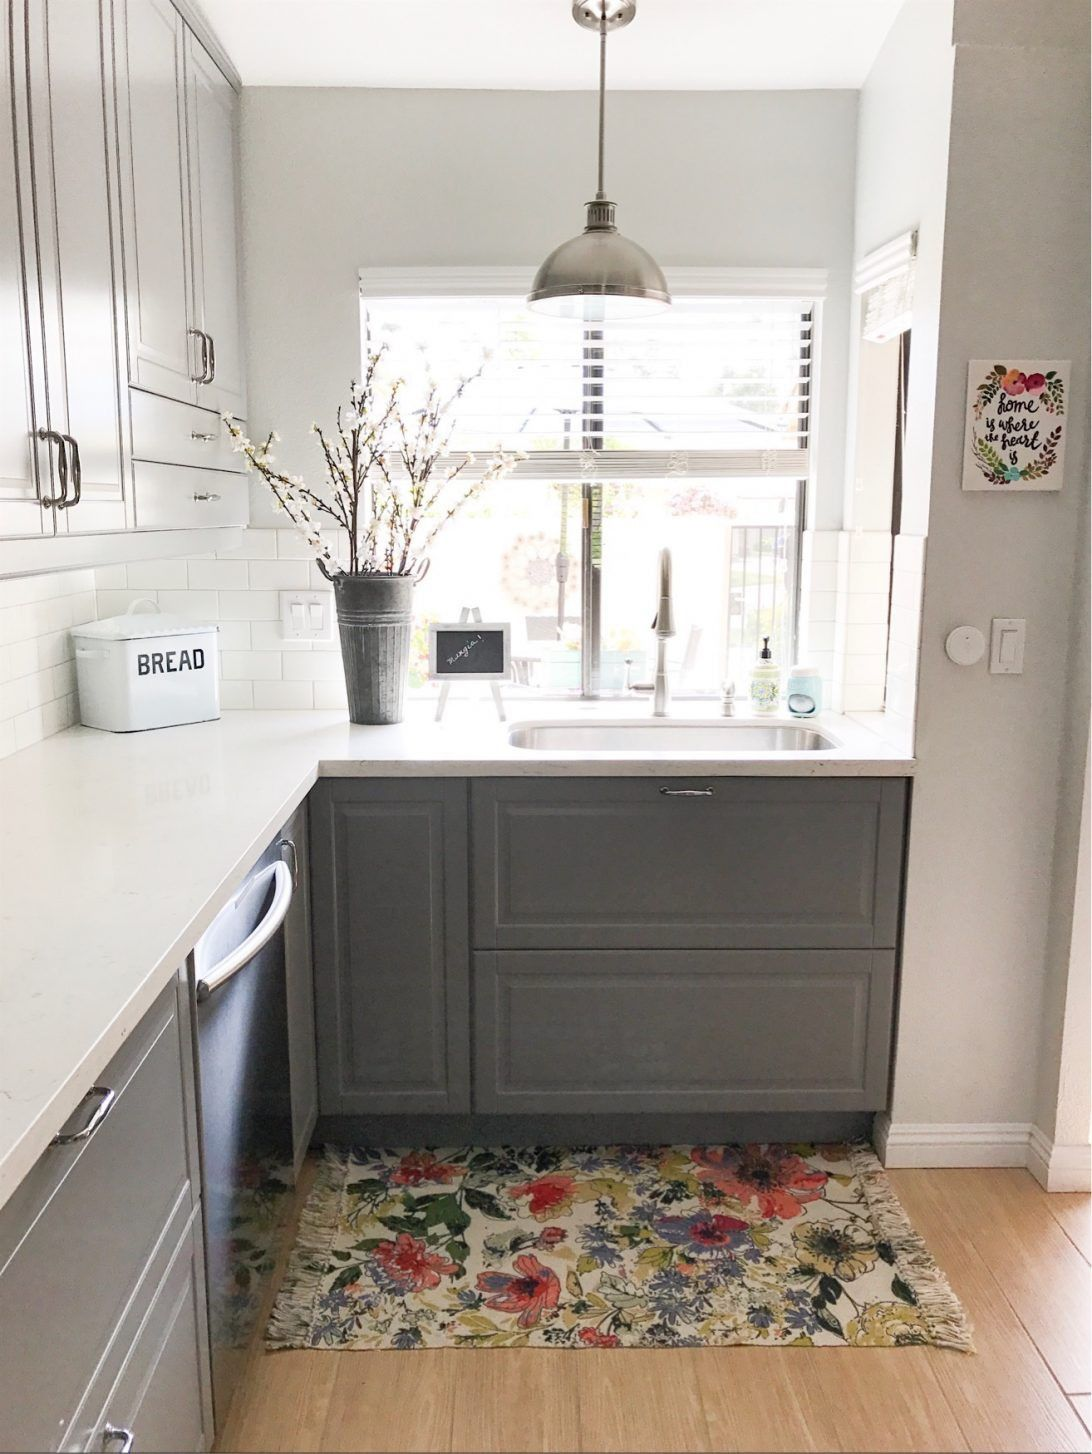 Luxury Ikea Kitchen Cabinets Average Cost The Most Elegant In Addition To Beautiful Ik Modern White Kitchen Cabinets Cost Of Kitchen Cabinets Kitchen Remodel